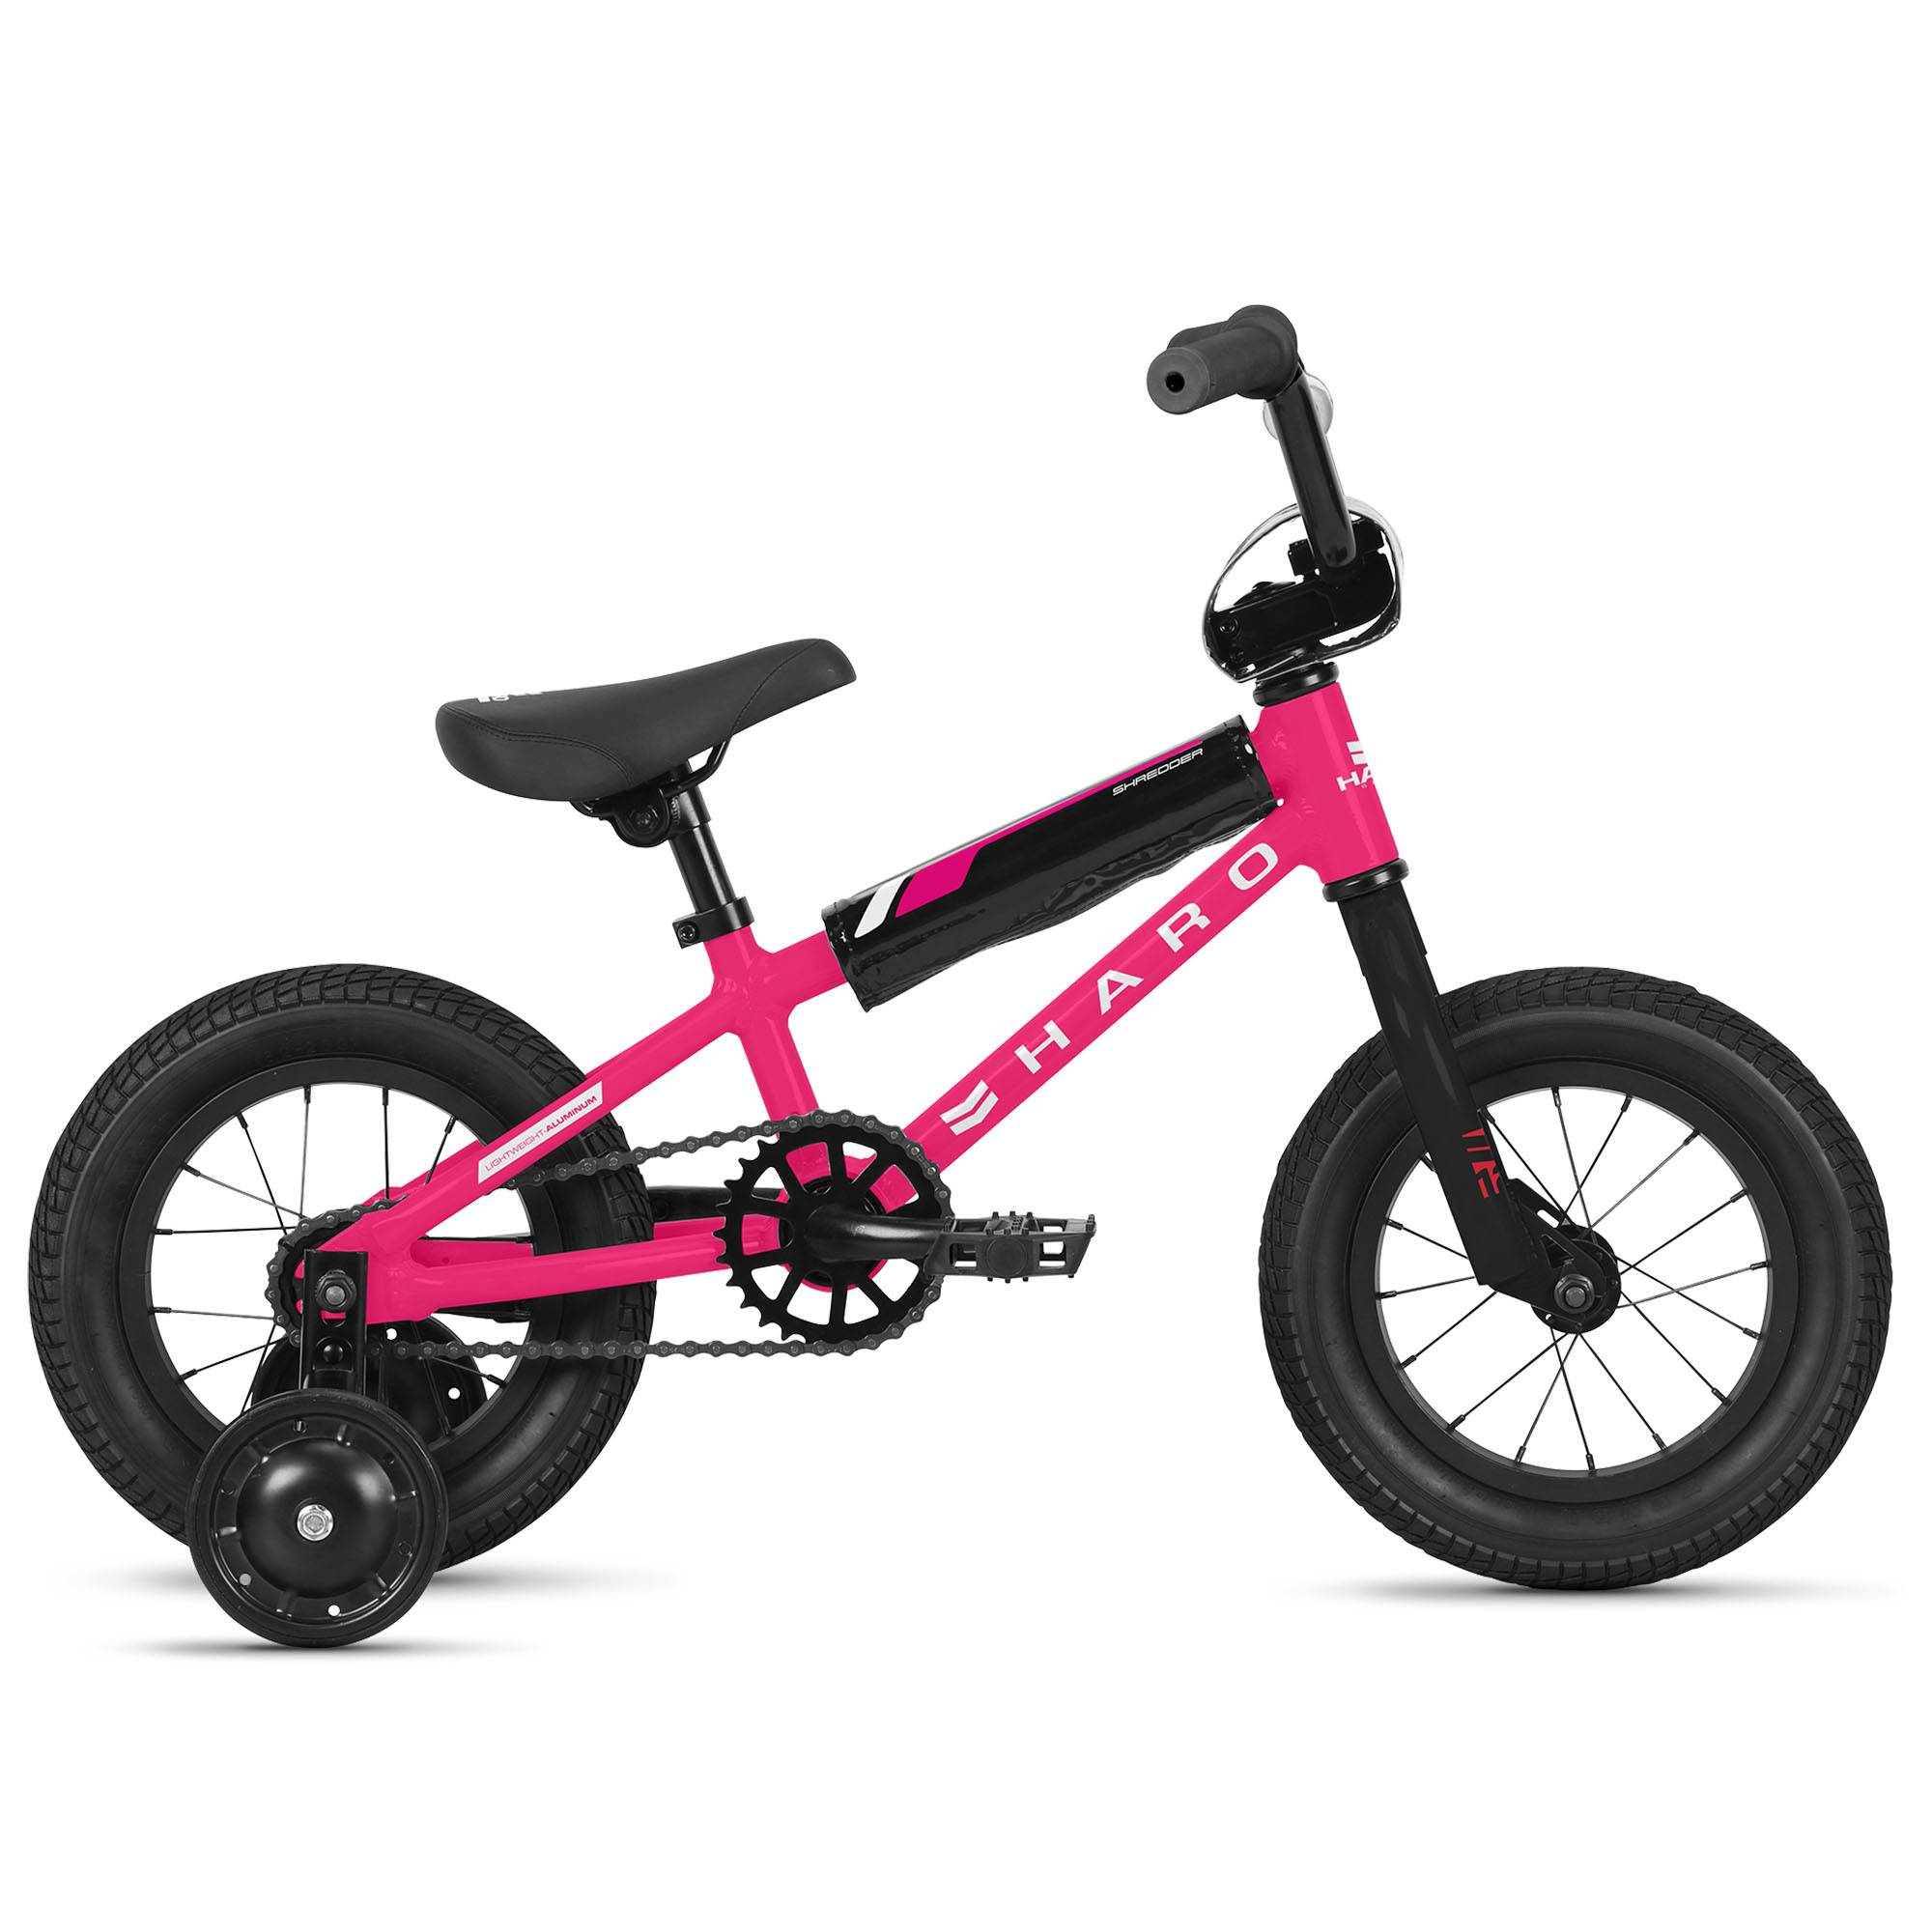 Haro Girl's Shredder 12 Sidewalk Bike '21  - Magenta - Size: 12